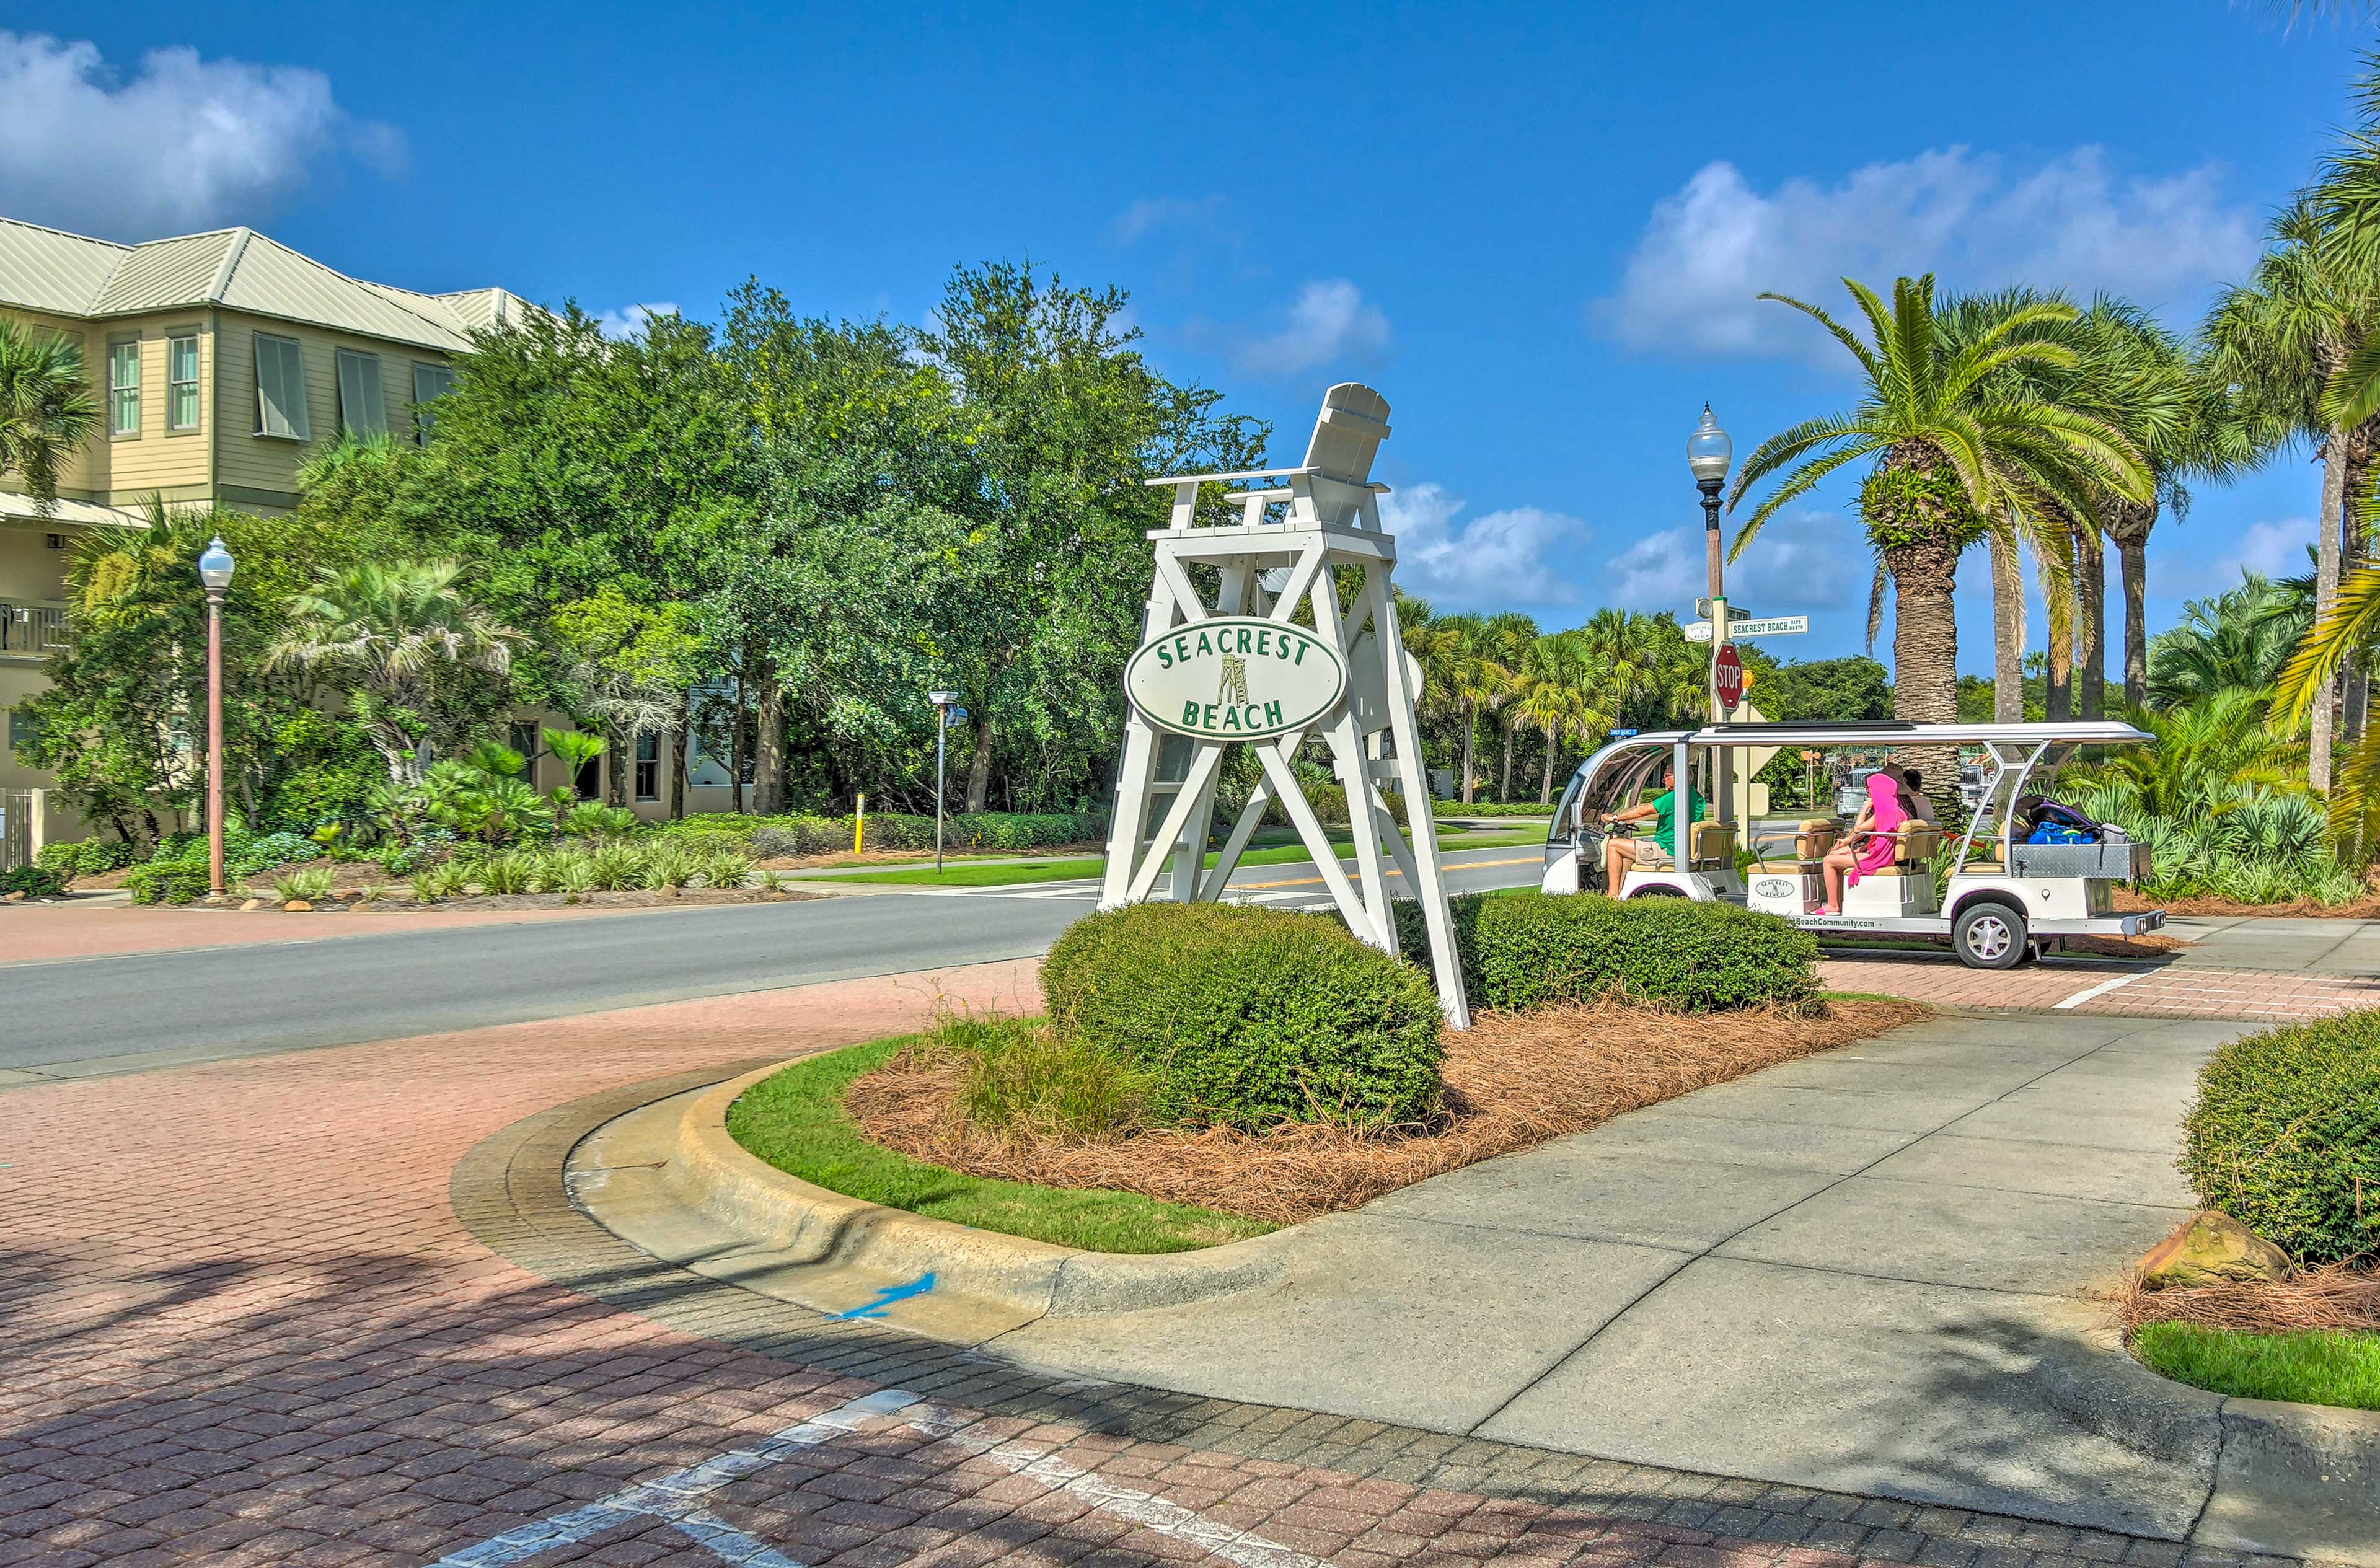 Visit Seacrest Beach for the perfect Sunshine State retreat!